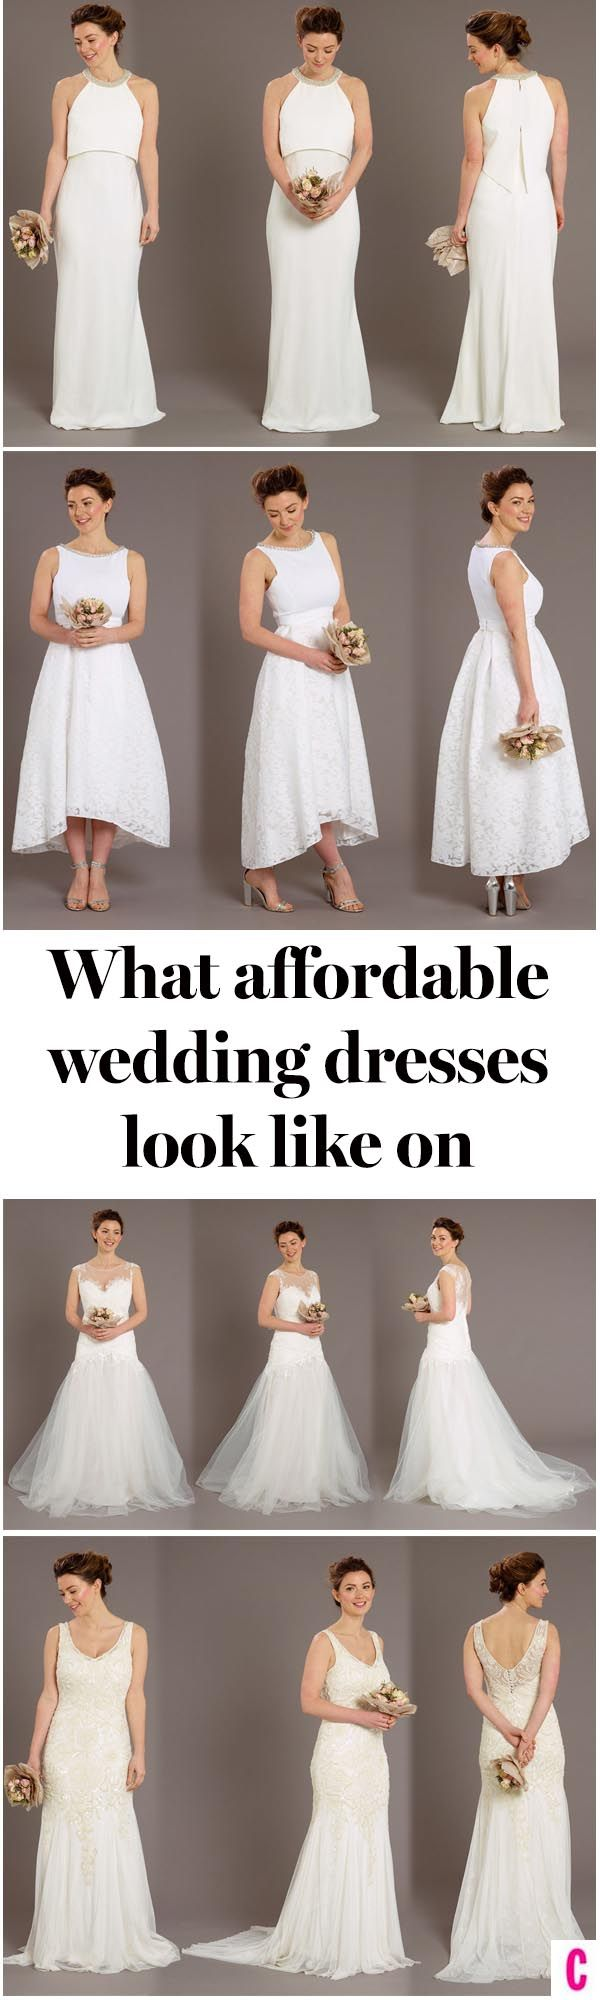 We tried on eight different high street wedding dresses from ASOS to Phase Eight and Coast to see how they look off the rack